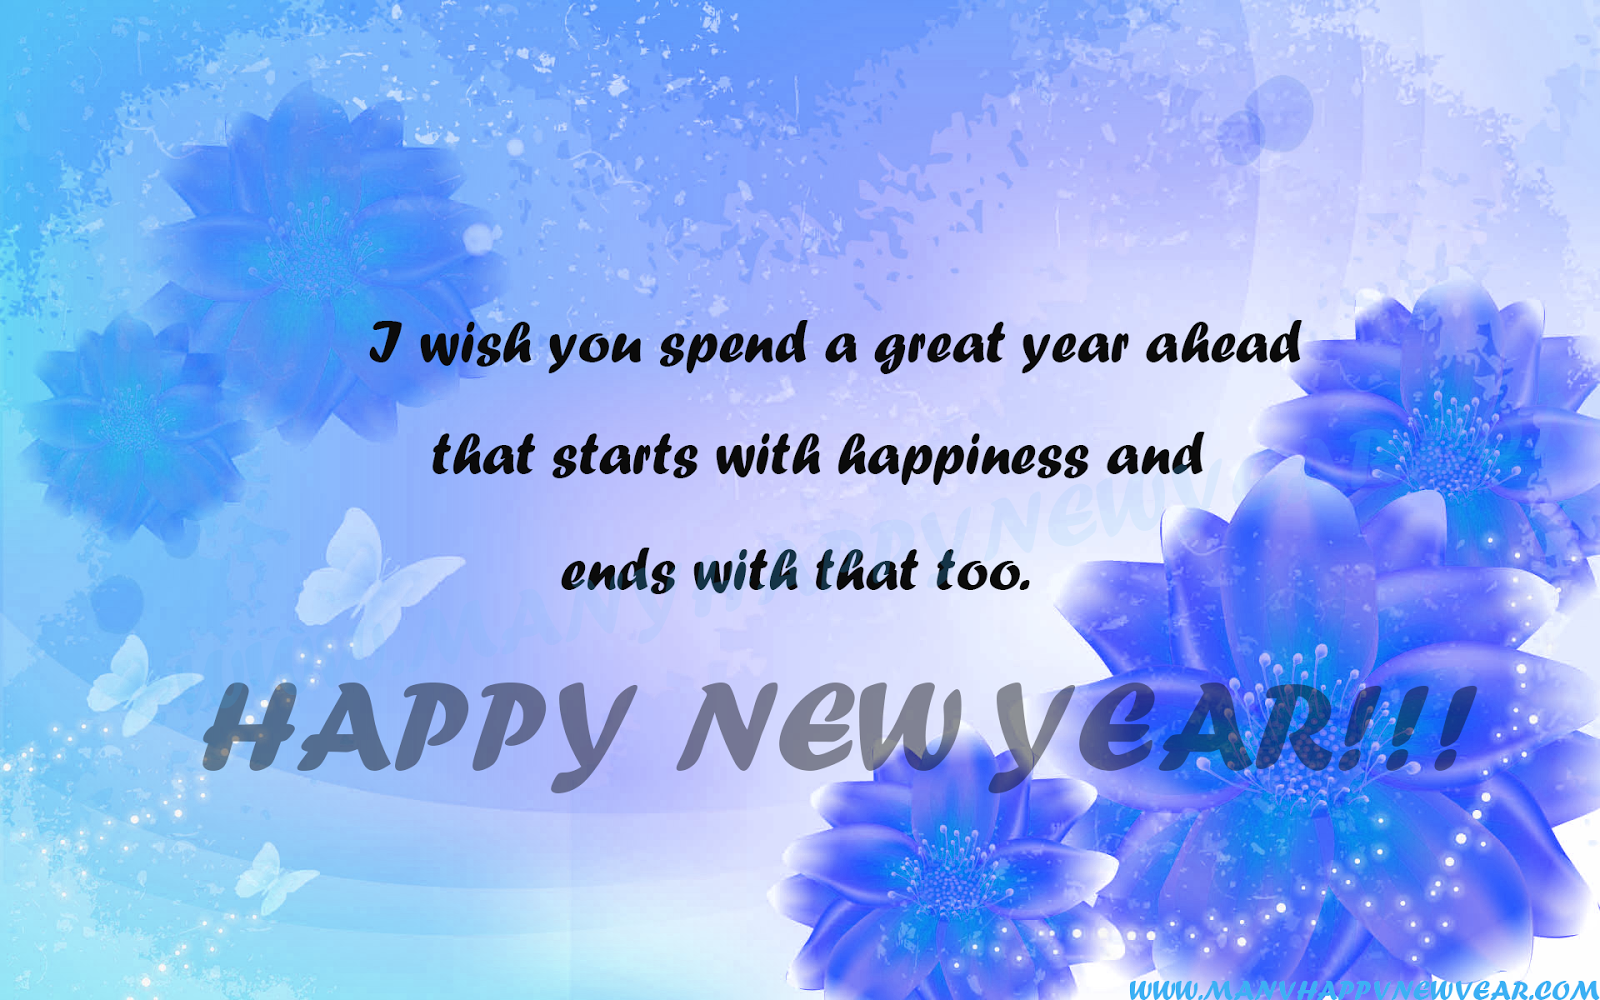 Happy new year greetings words 2018 sentiments good wishes cards happy new year greetings words 2018 sentiments good wishes cards kristyandbryce Images